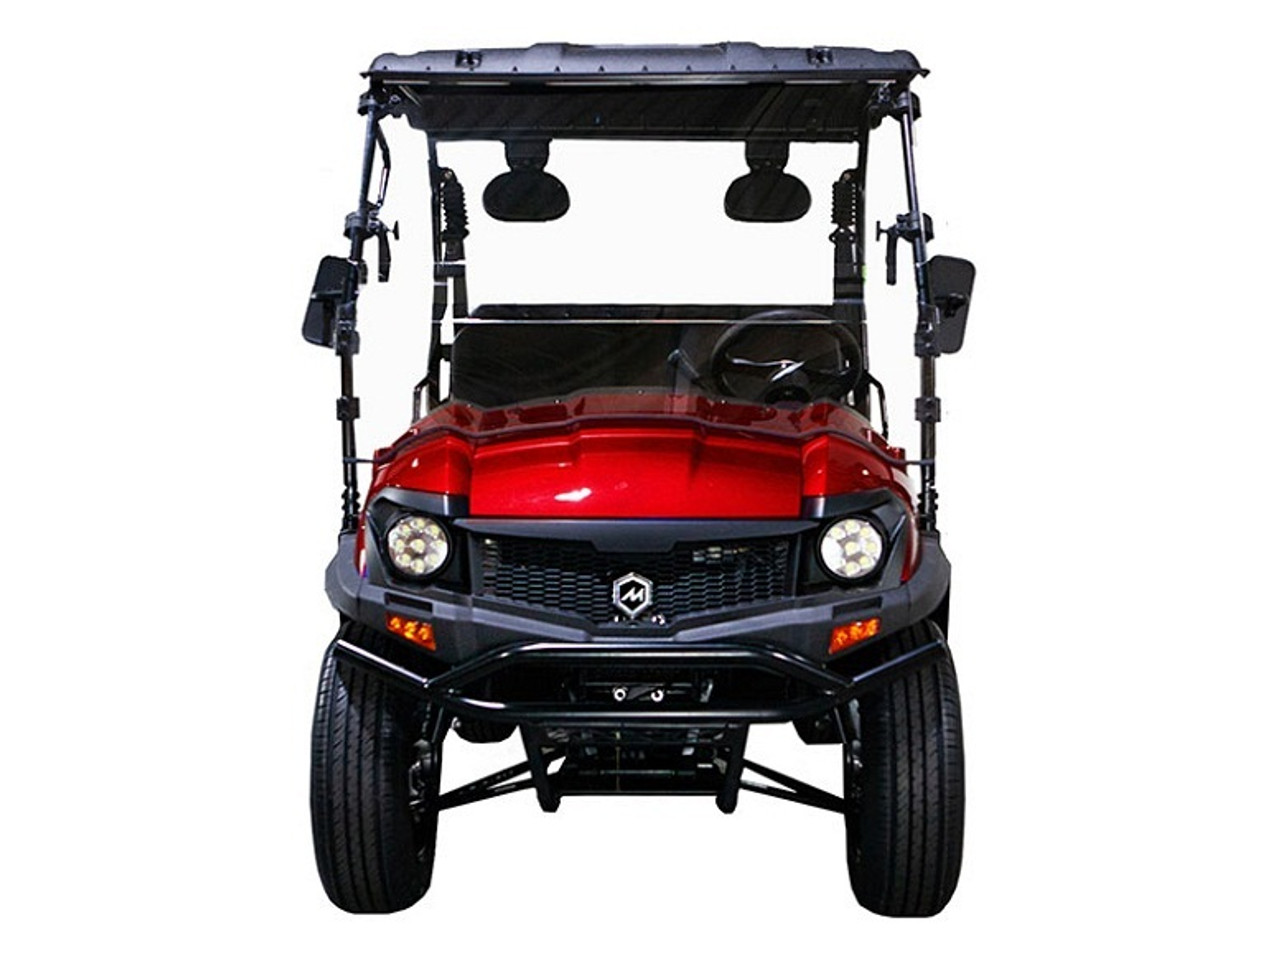 RED - MASSIMO BUCK 200X UTV, 177cc Four-Stroke, Single Cylinder